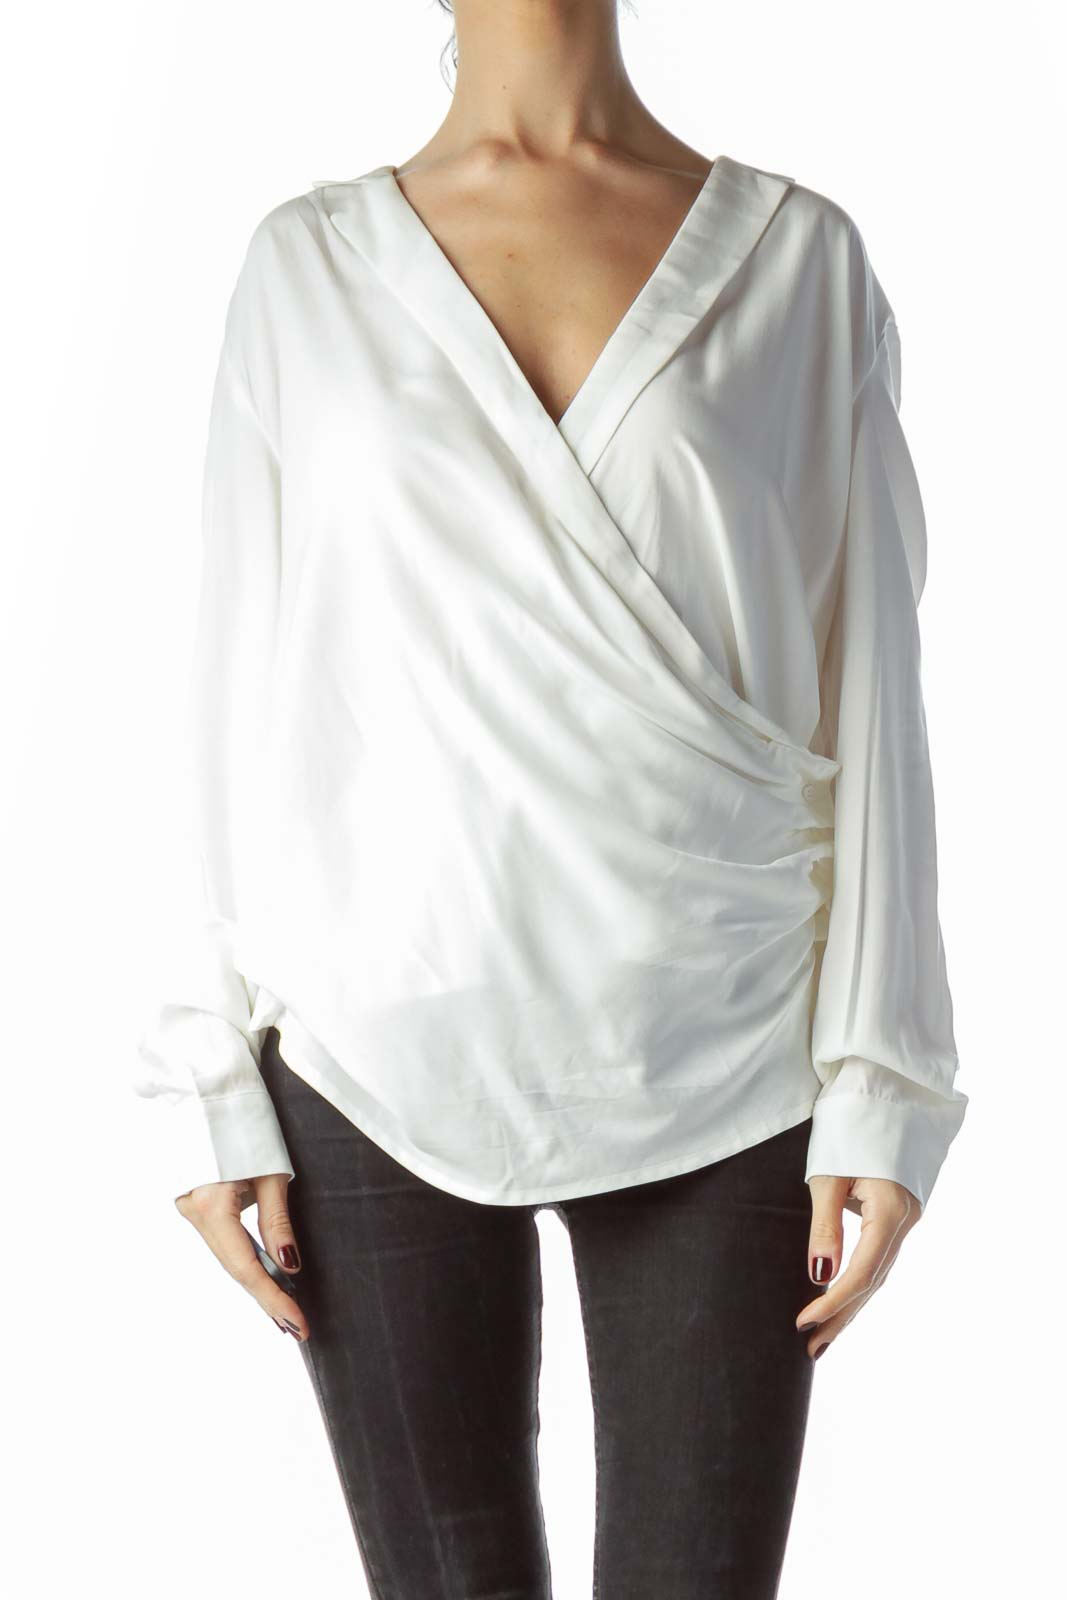 Off-White Open Front Buttoned V-Neck Top Front